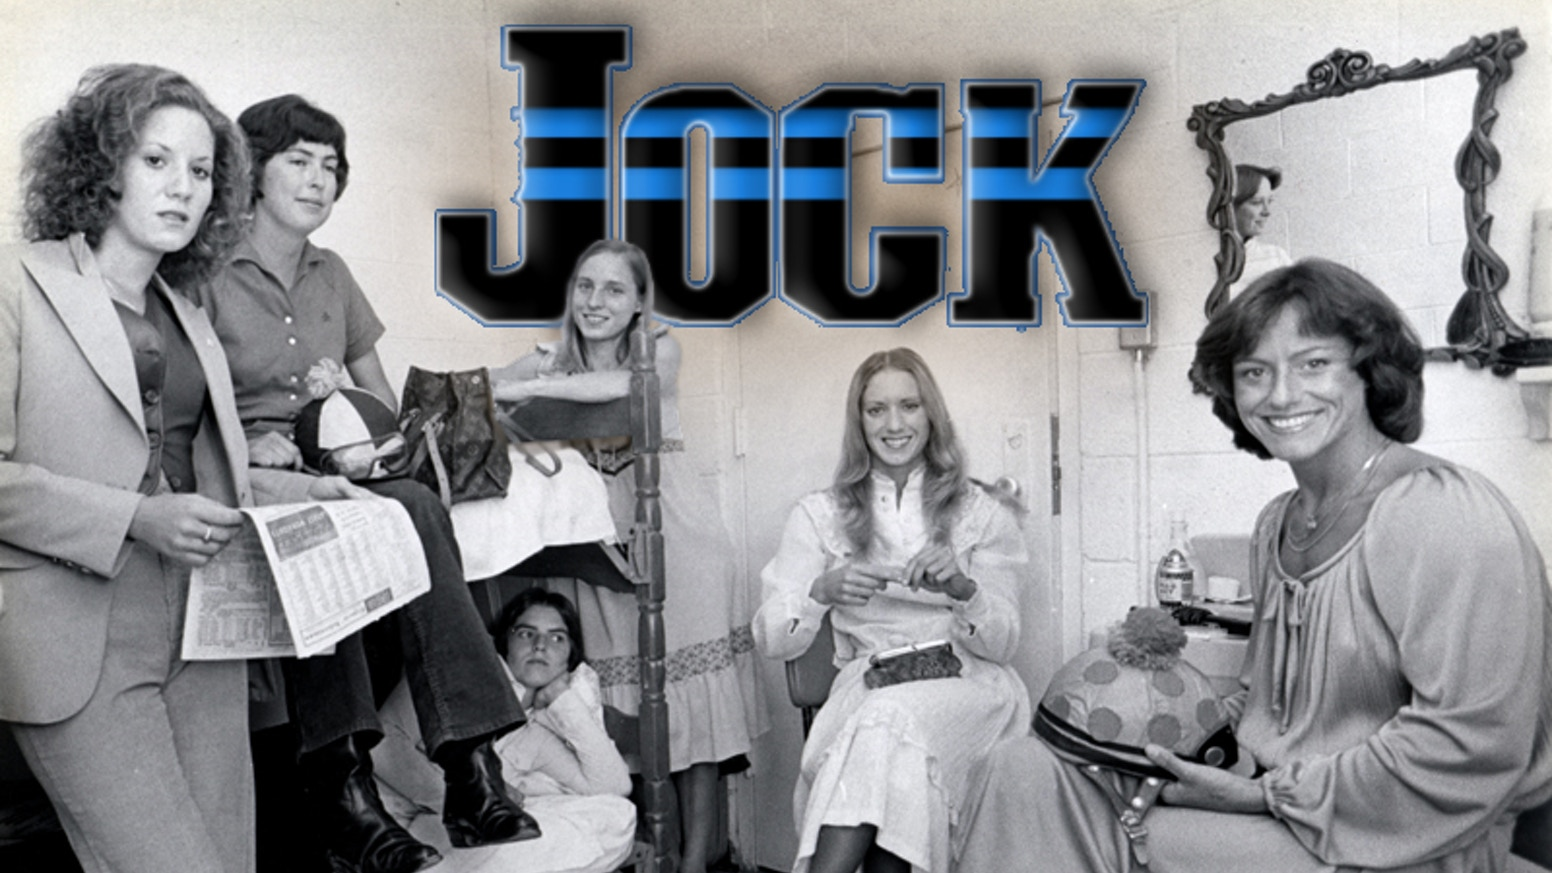 Jock Female Jockey Documentary By Jason Neff Kickstarter